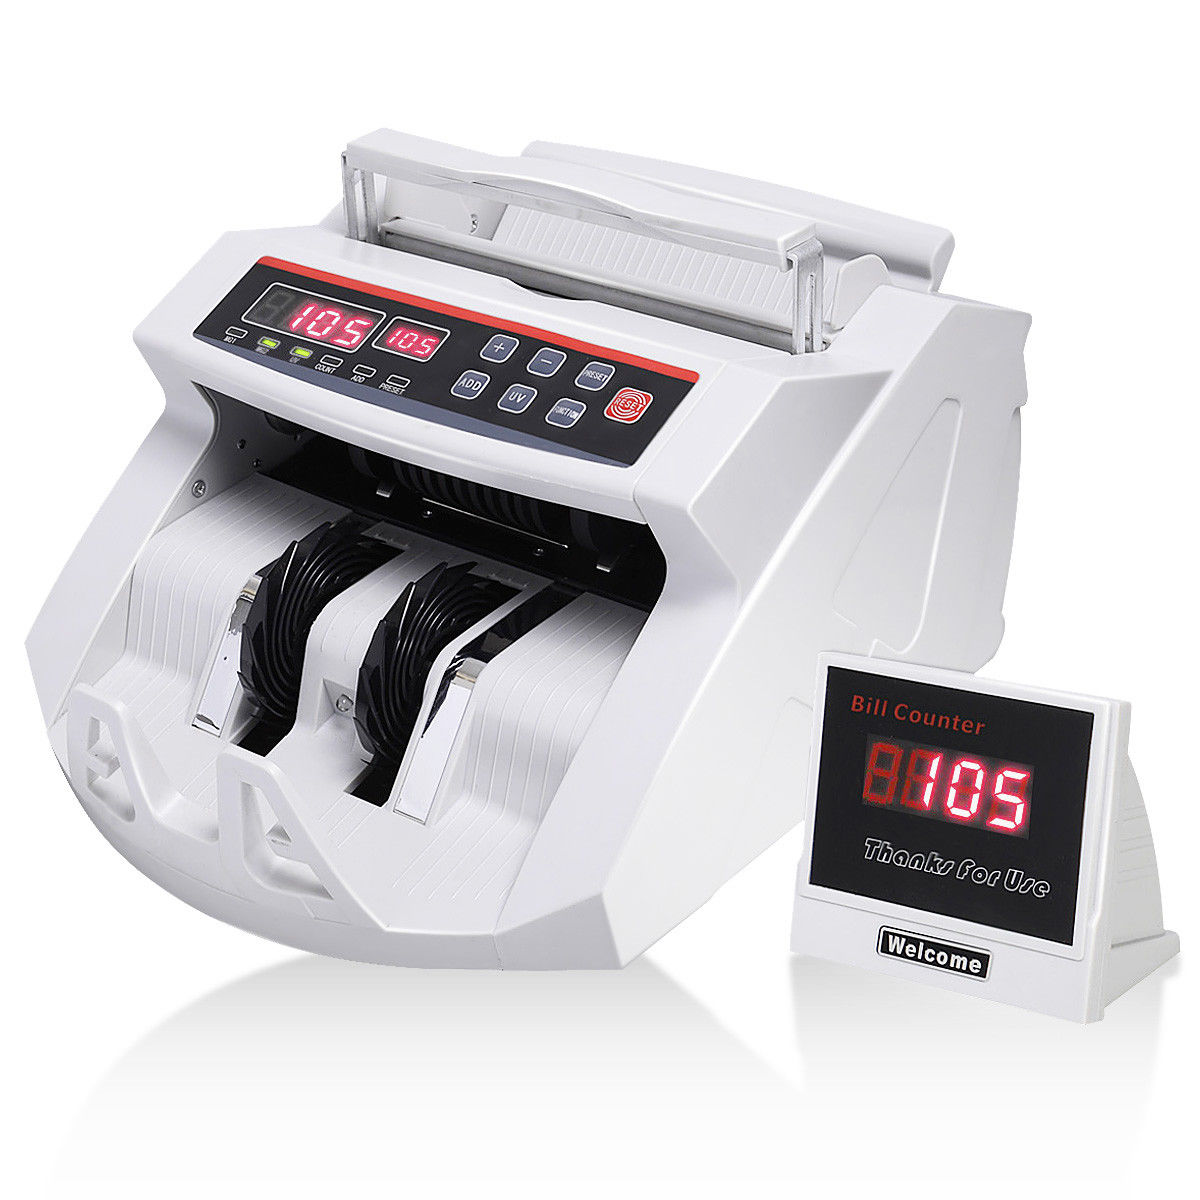 Costway Money Bill Counter Counting Machine Counterfeit Detector UV & MG Cash Bank